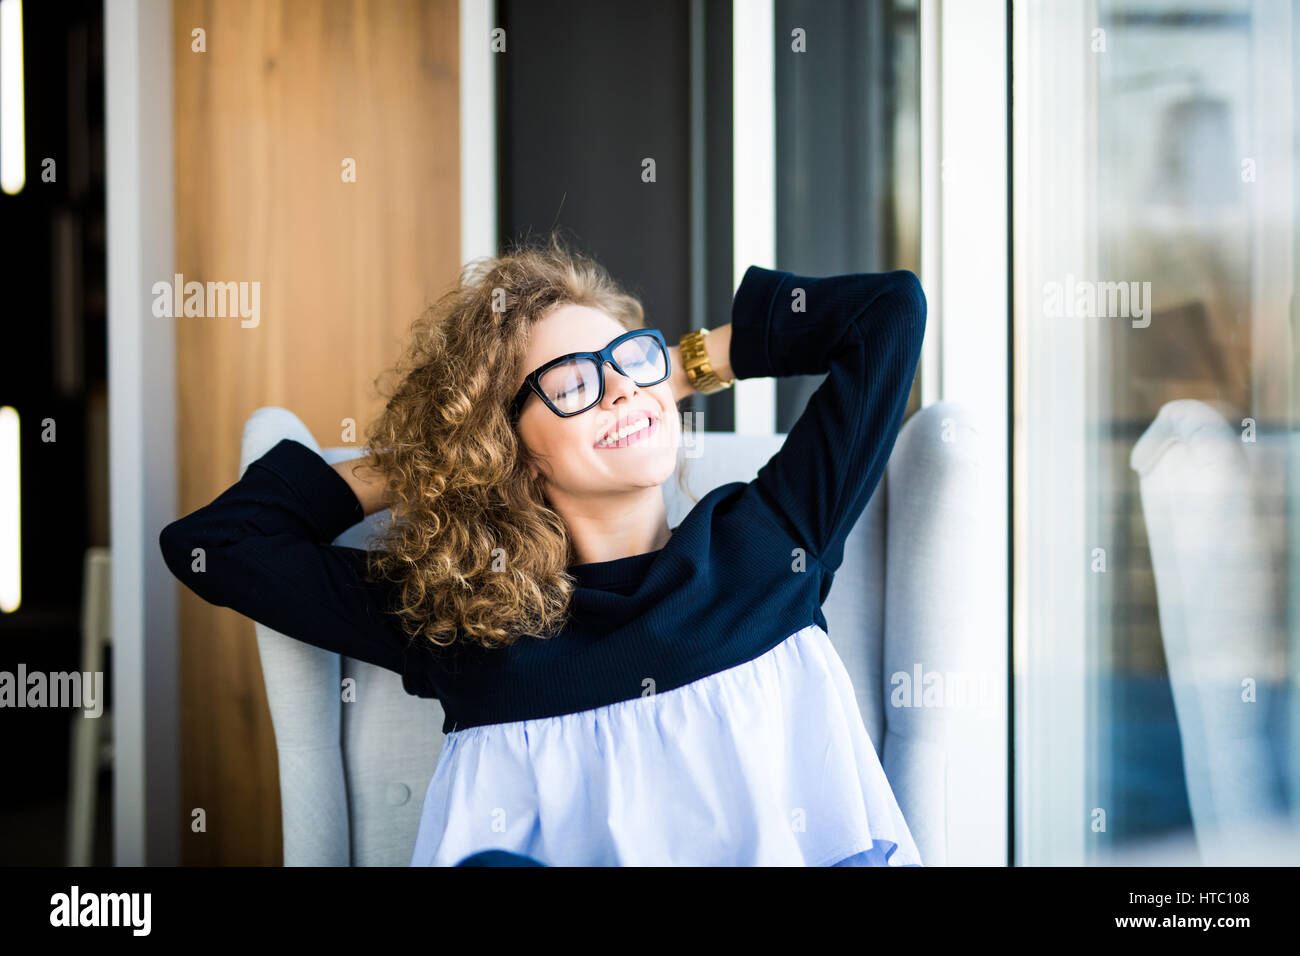 Business woman relaxing working at office desk laid back resting on chair with hands behind head - Stock Image